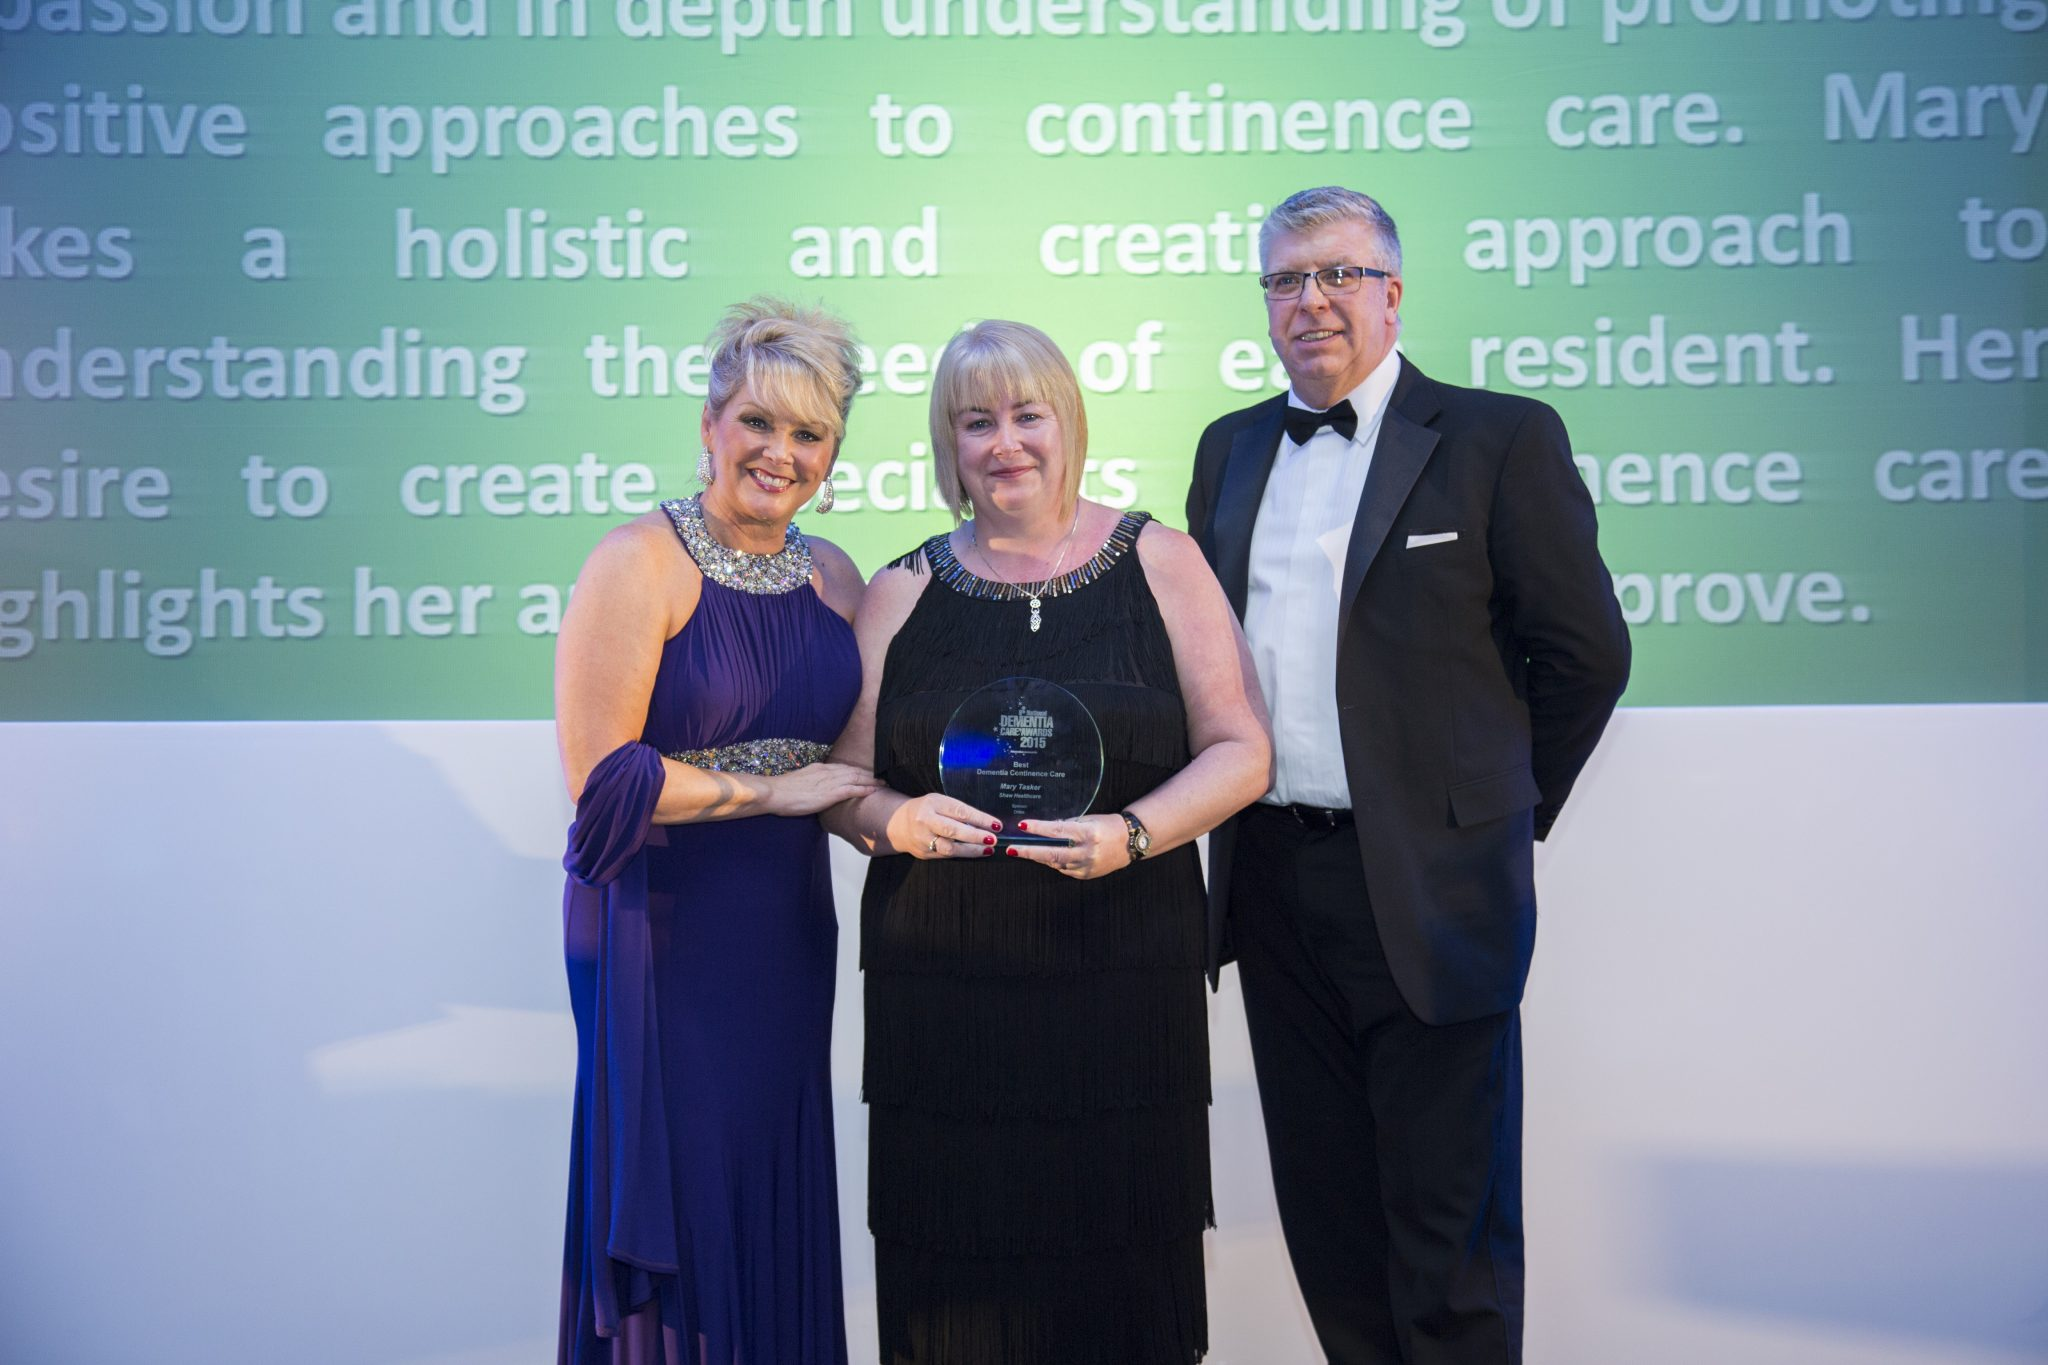 Mary Tasker manager of The Hawthorns in Evesham and winner of the Best Dementia Continence Care Award at the National Dementia Care Awards